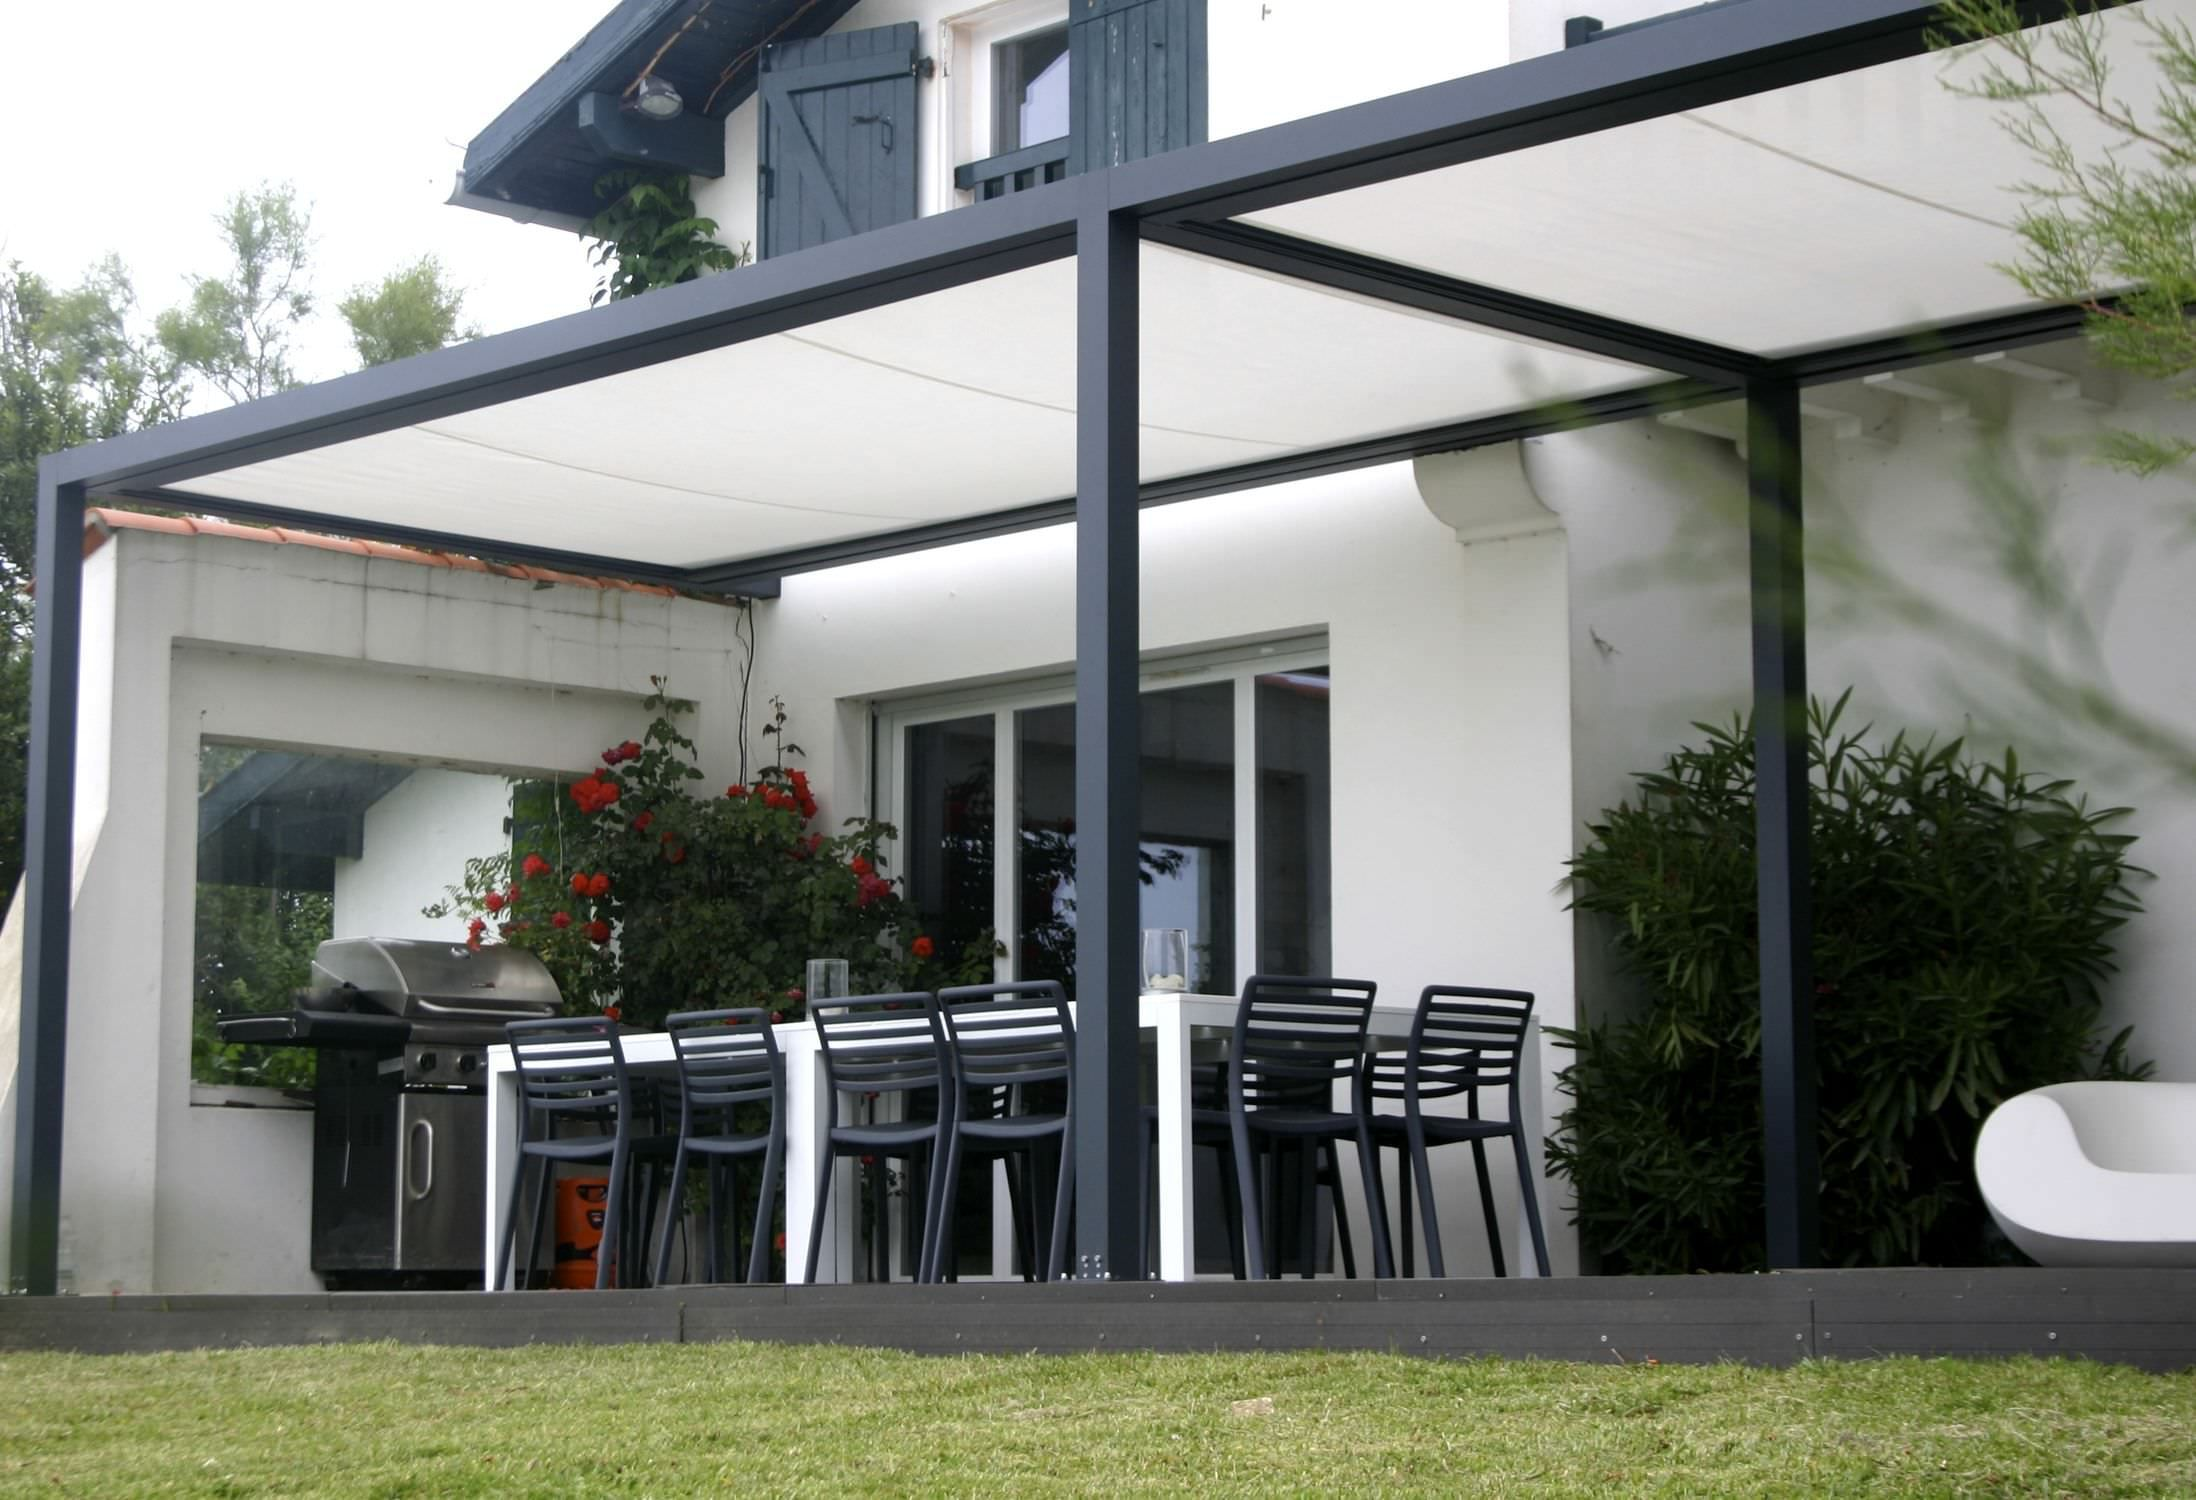 Self supporting pergola aluminium pvc fabric sliding canopy id2 design id e terrasse for Pergola aluminium design